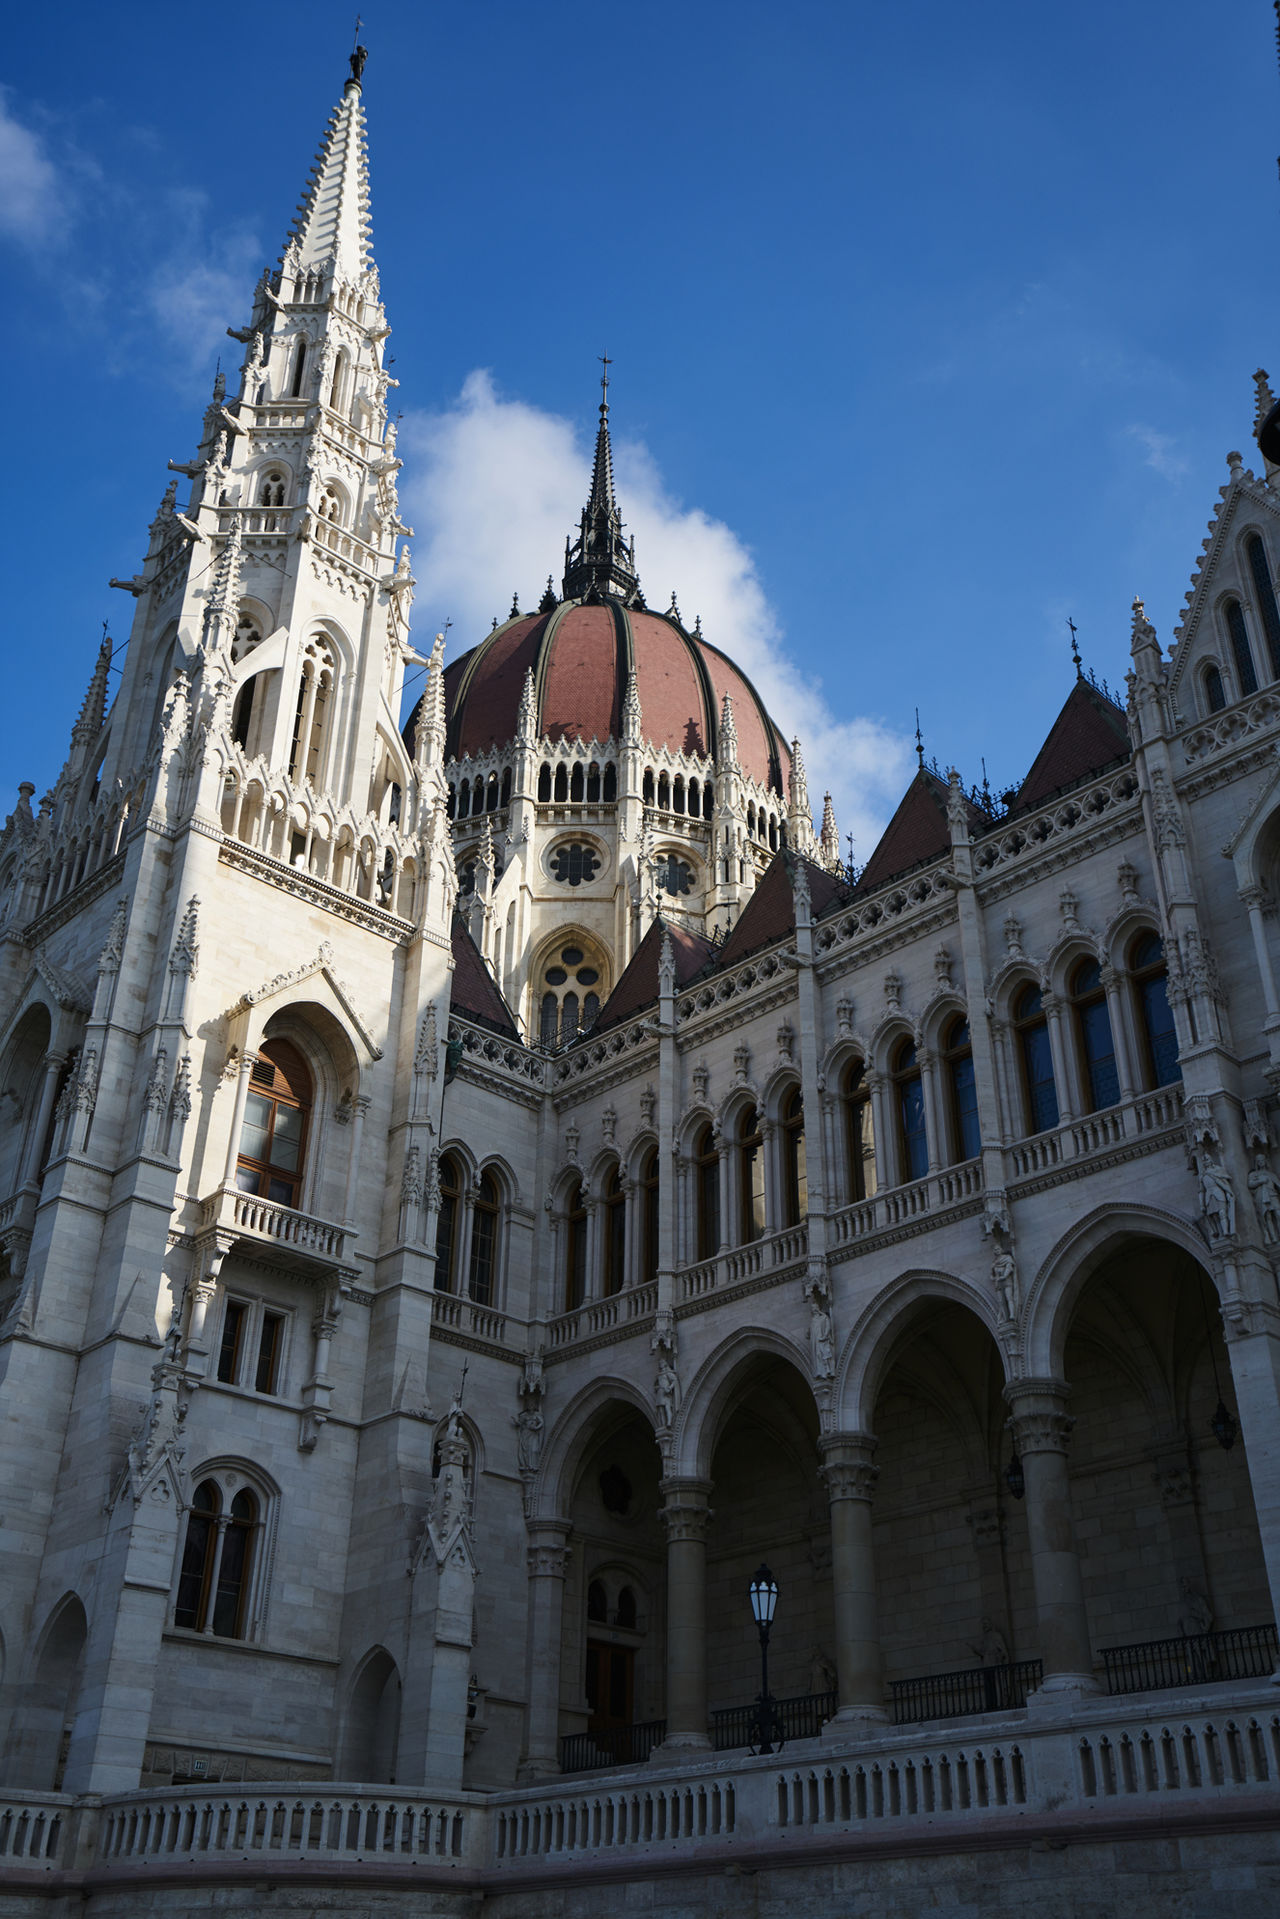 Travel Destinations Politics And Government Architecture Government Gothic Style Building Exterior City No People Outdoors Sky Day Hungary Budapest Orszaghaz